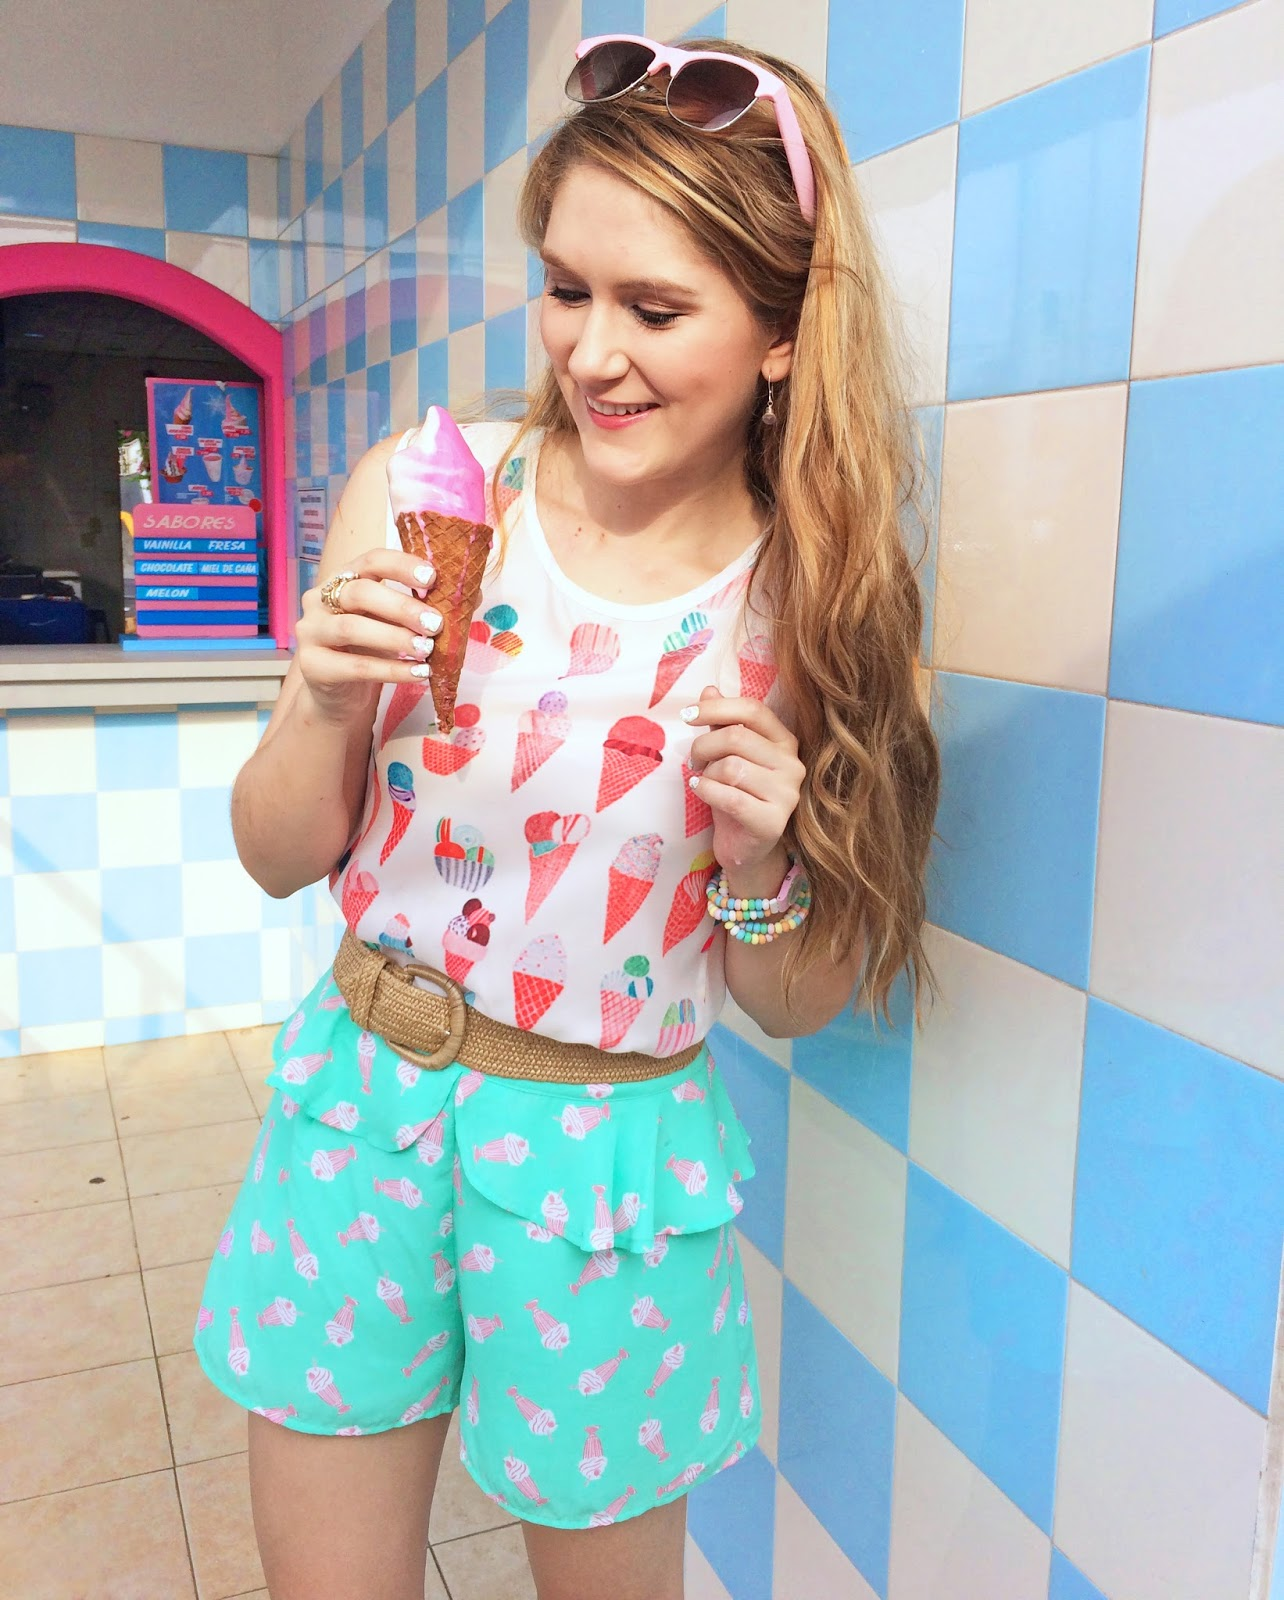 Casual outfit for Summer. The Ice cream prints are too cute!